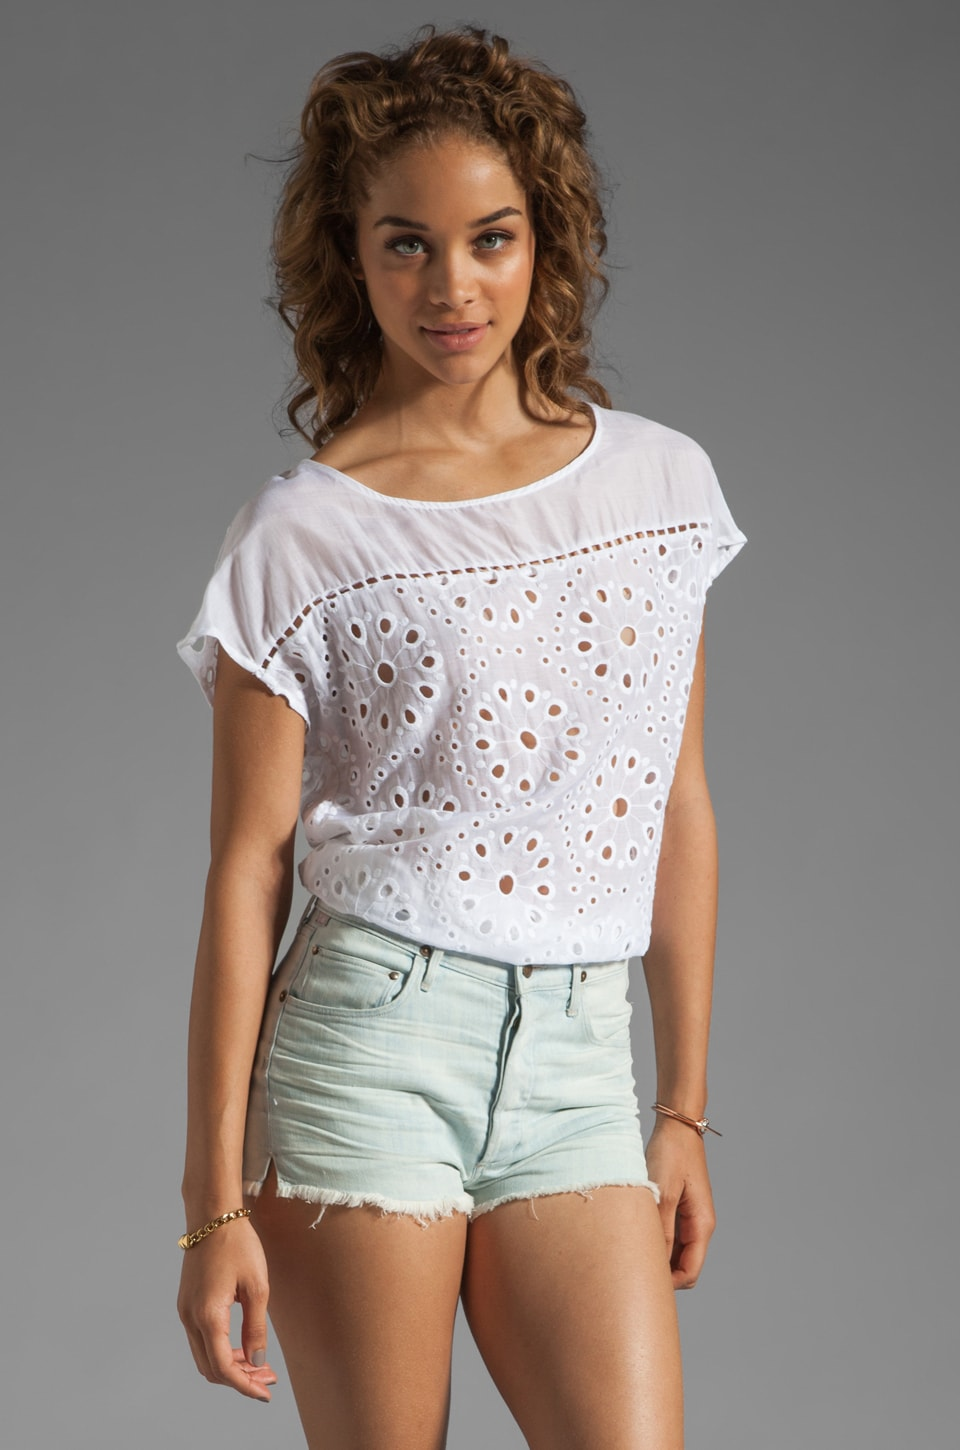 Ella Moss Heidi Eyelet Top in White